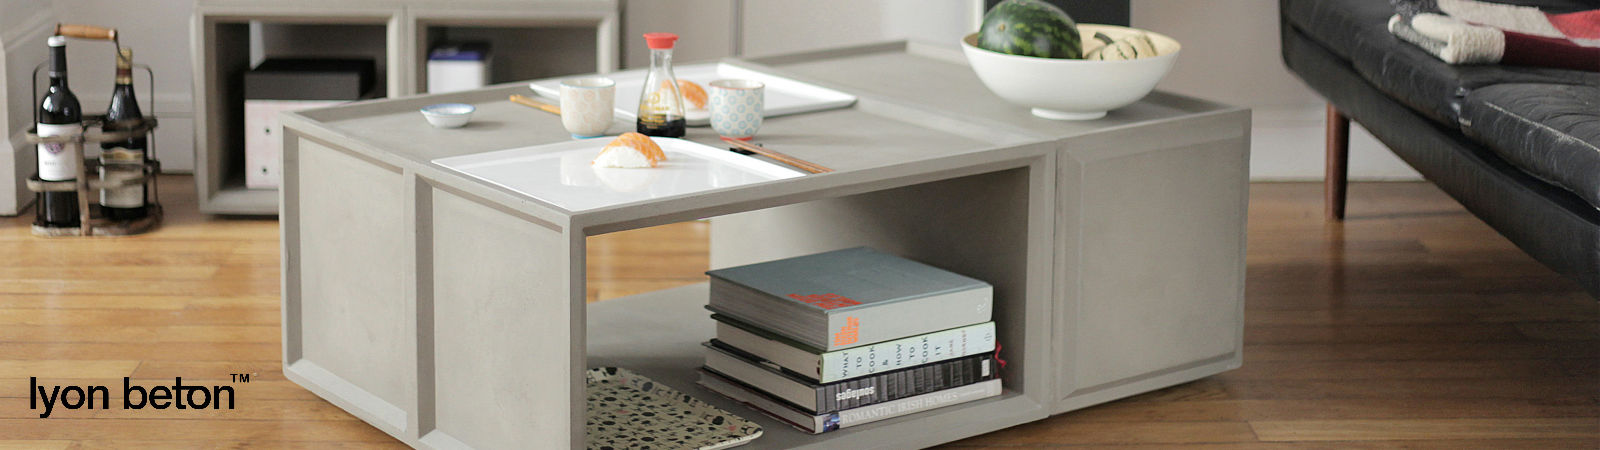 Lyon Beton furniture and accessories available online at Sportique.